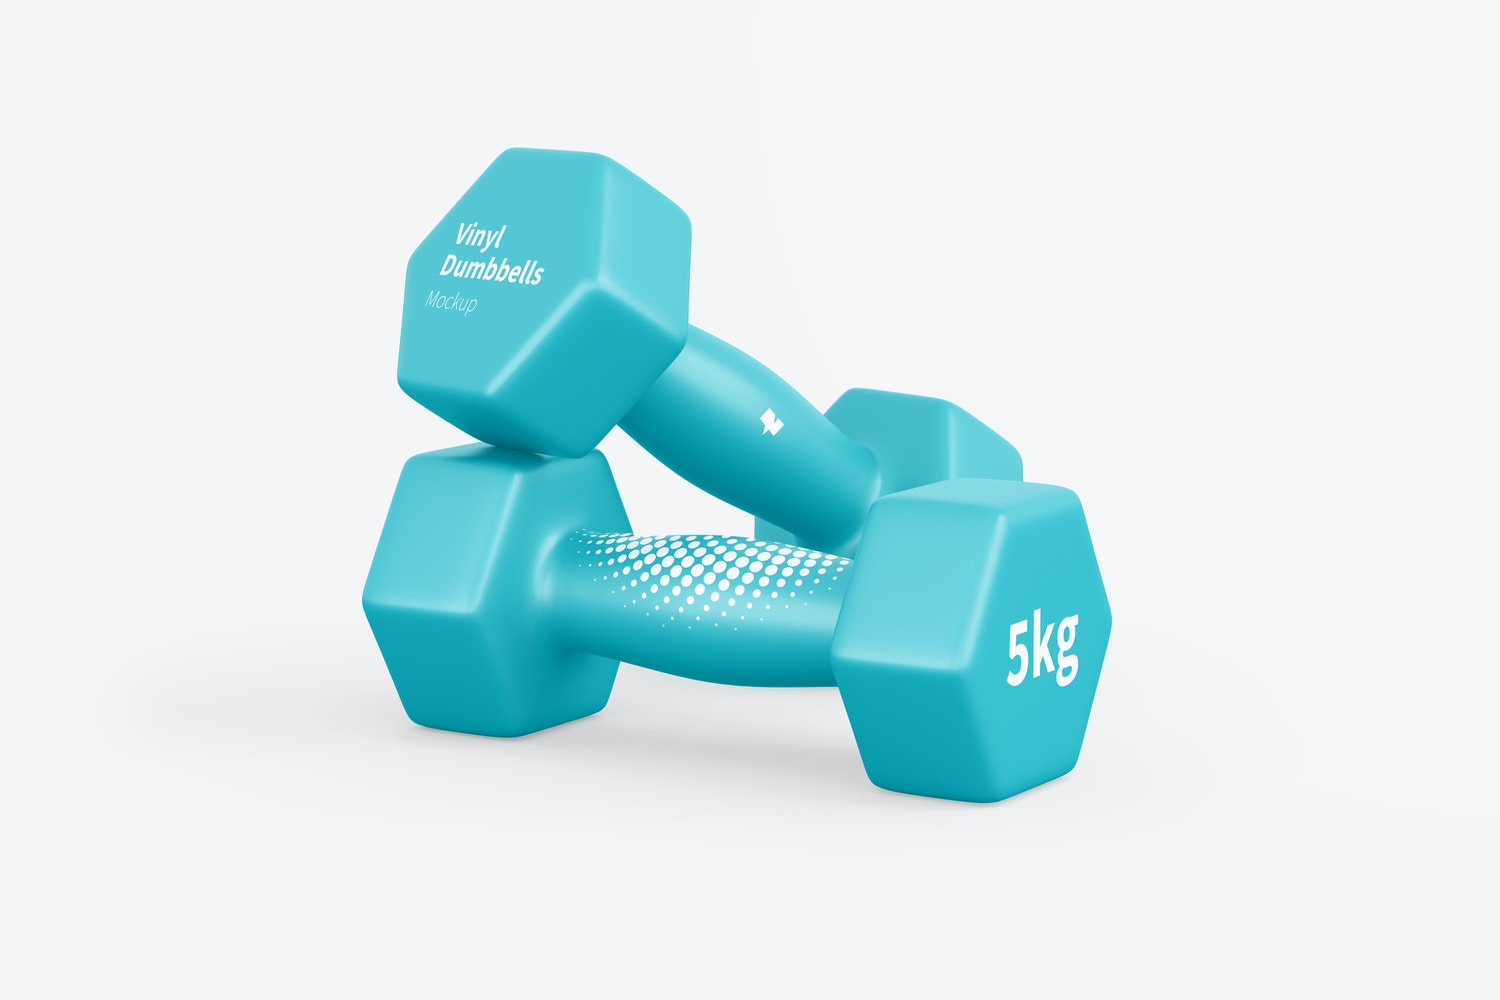 Vinyl Coated Dumbbells Mockup, Front View, Stacked